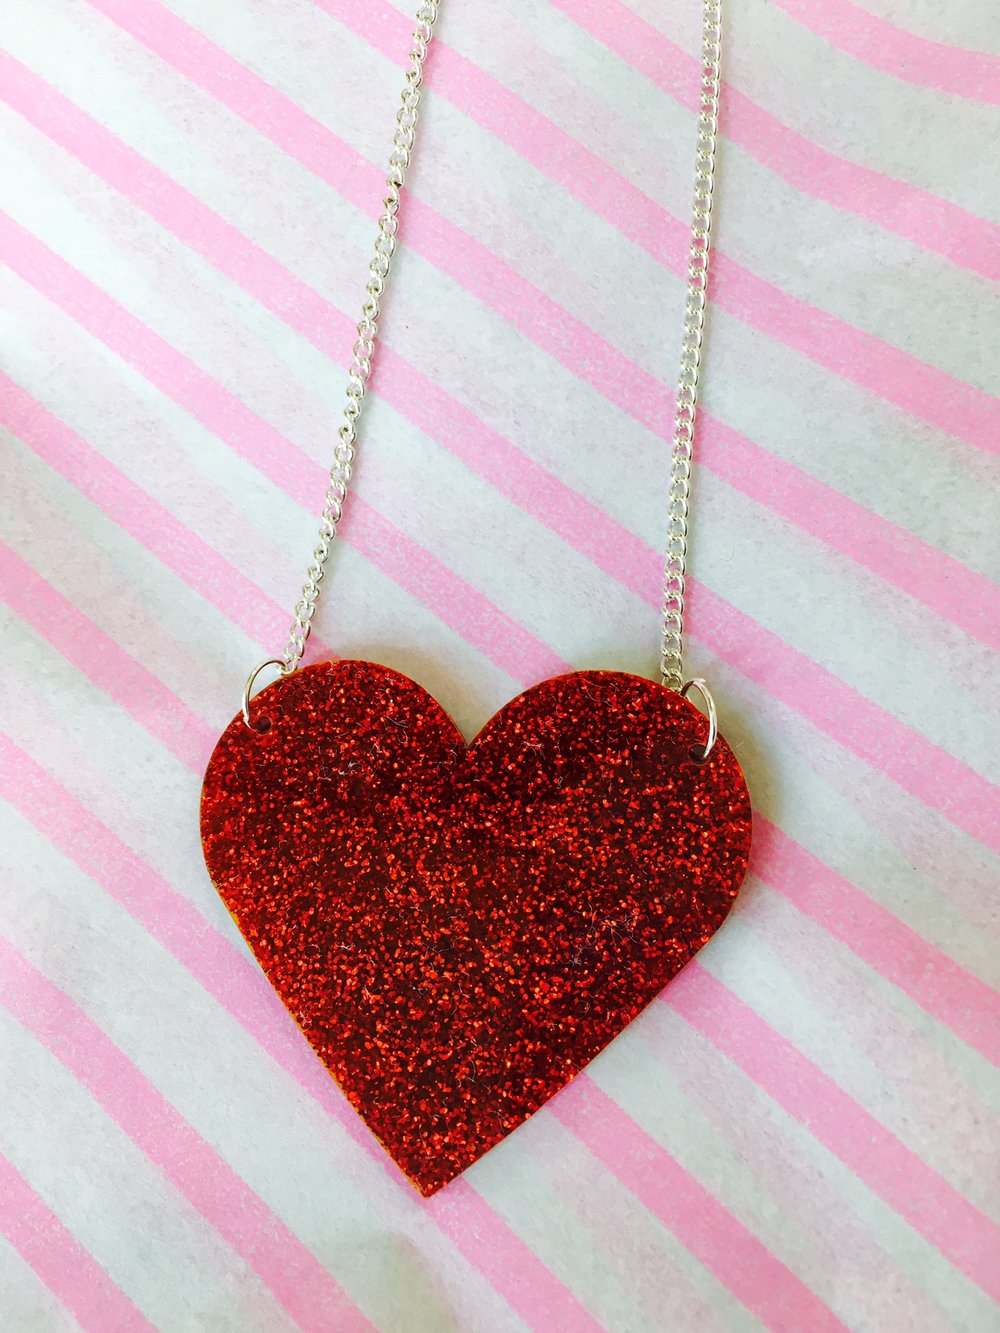 Red Glitter Heart Necklace - Was £35 Now £20 (also available in blue)